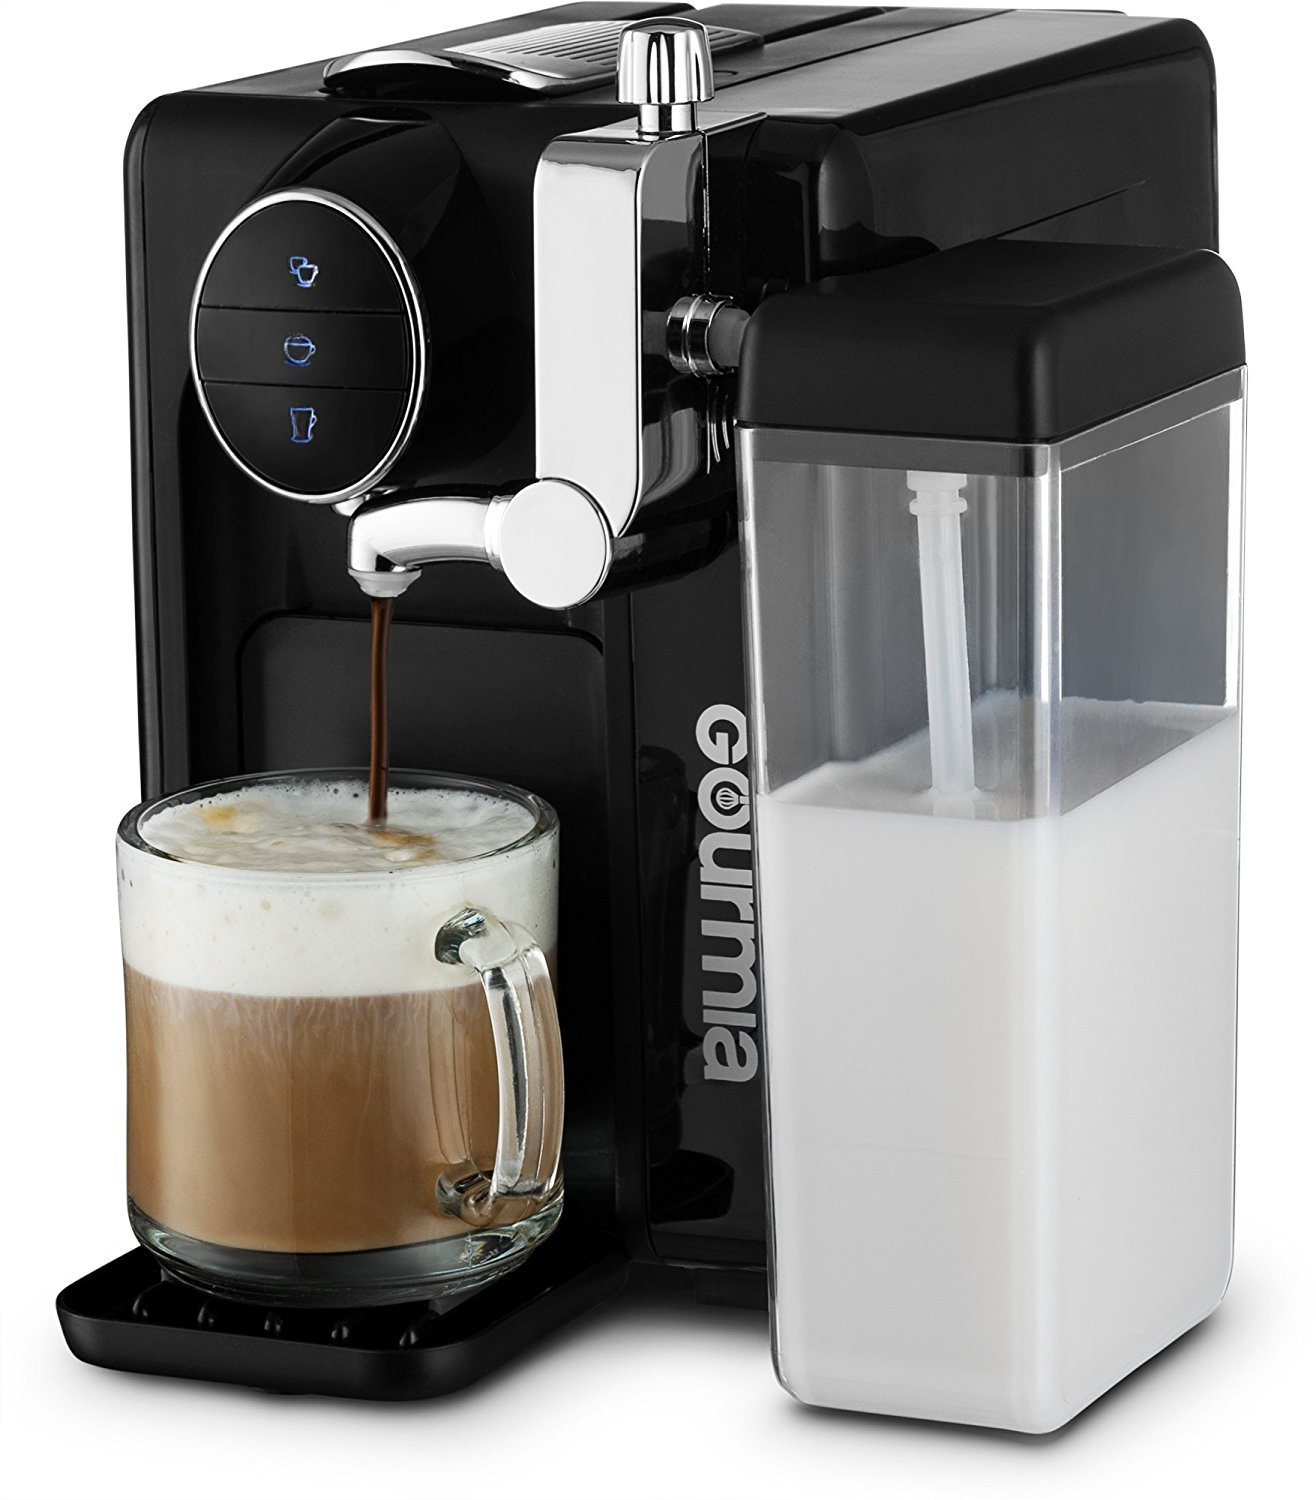 One Cup Latte Coffee Maker : The 6 Best Espresso Machine Under 300 In 2017 - Reviews & Buyer Guide